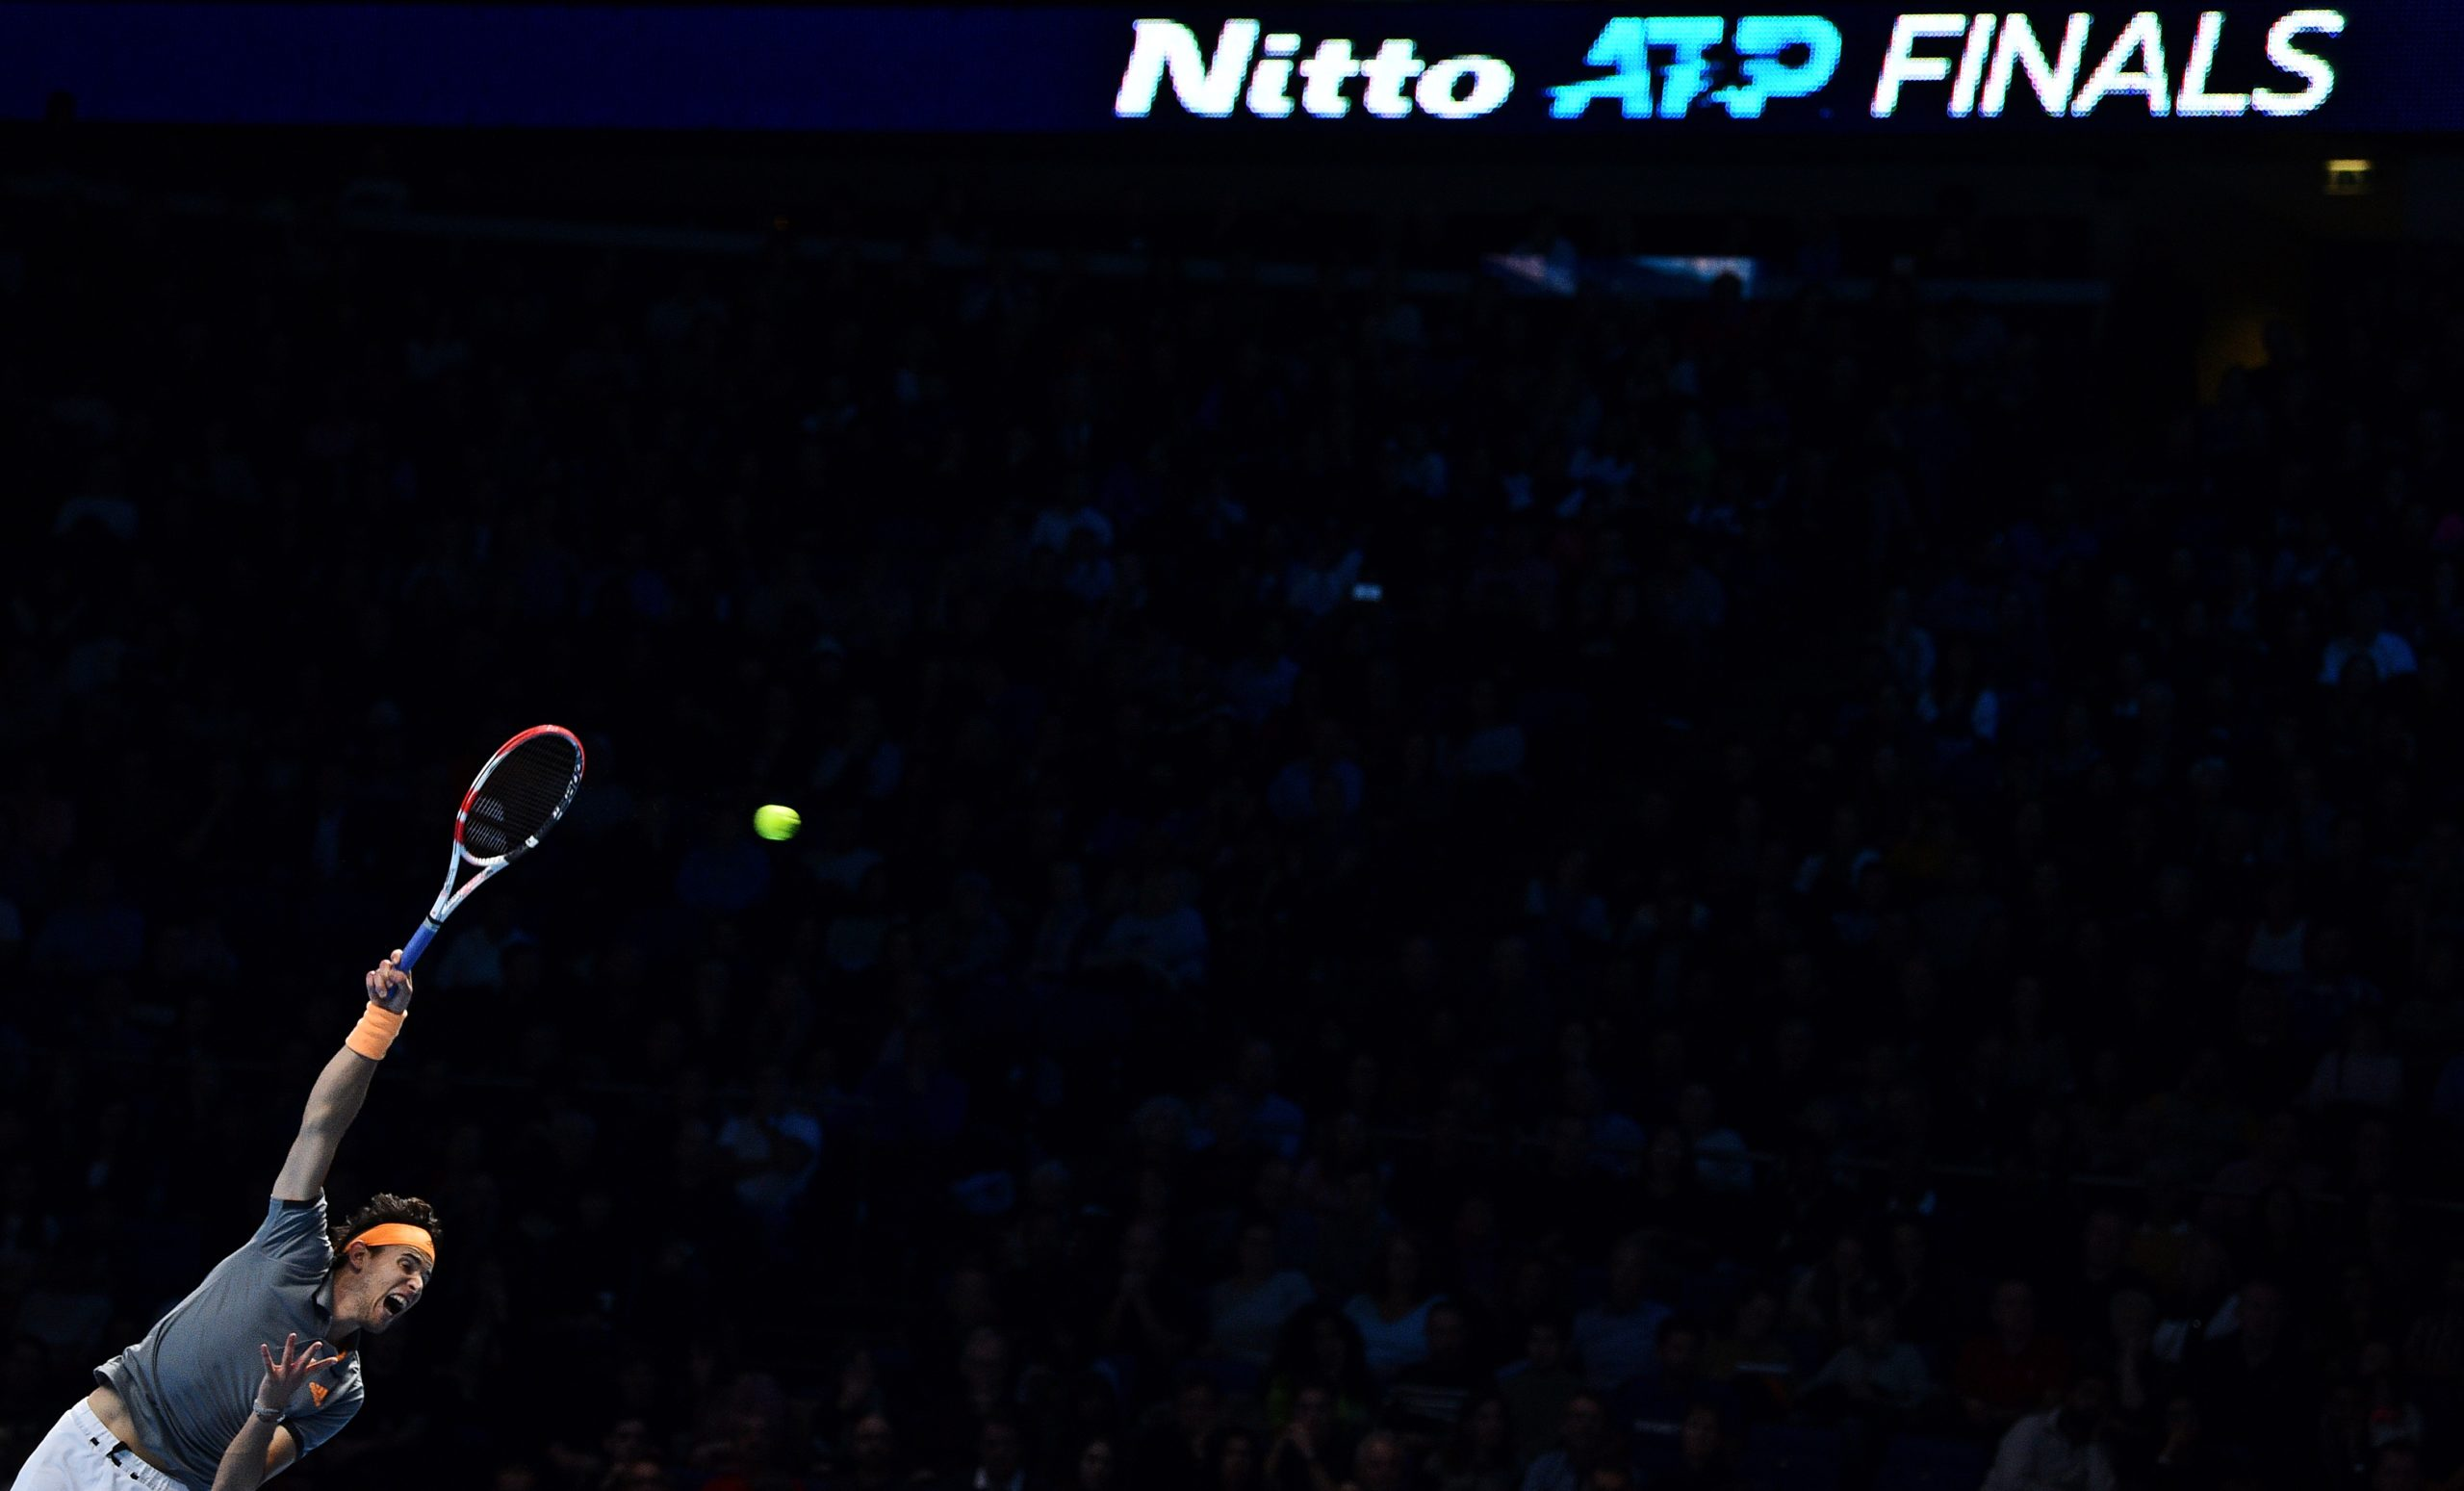 ATP Finals. Co by było, gdyby…